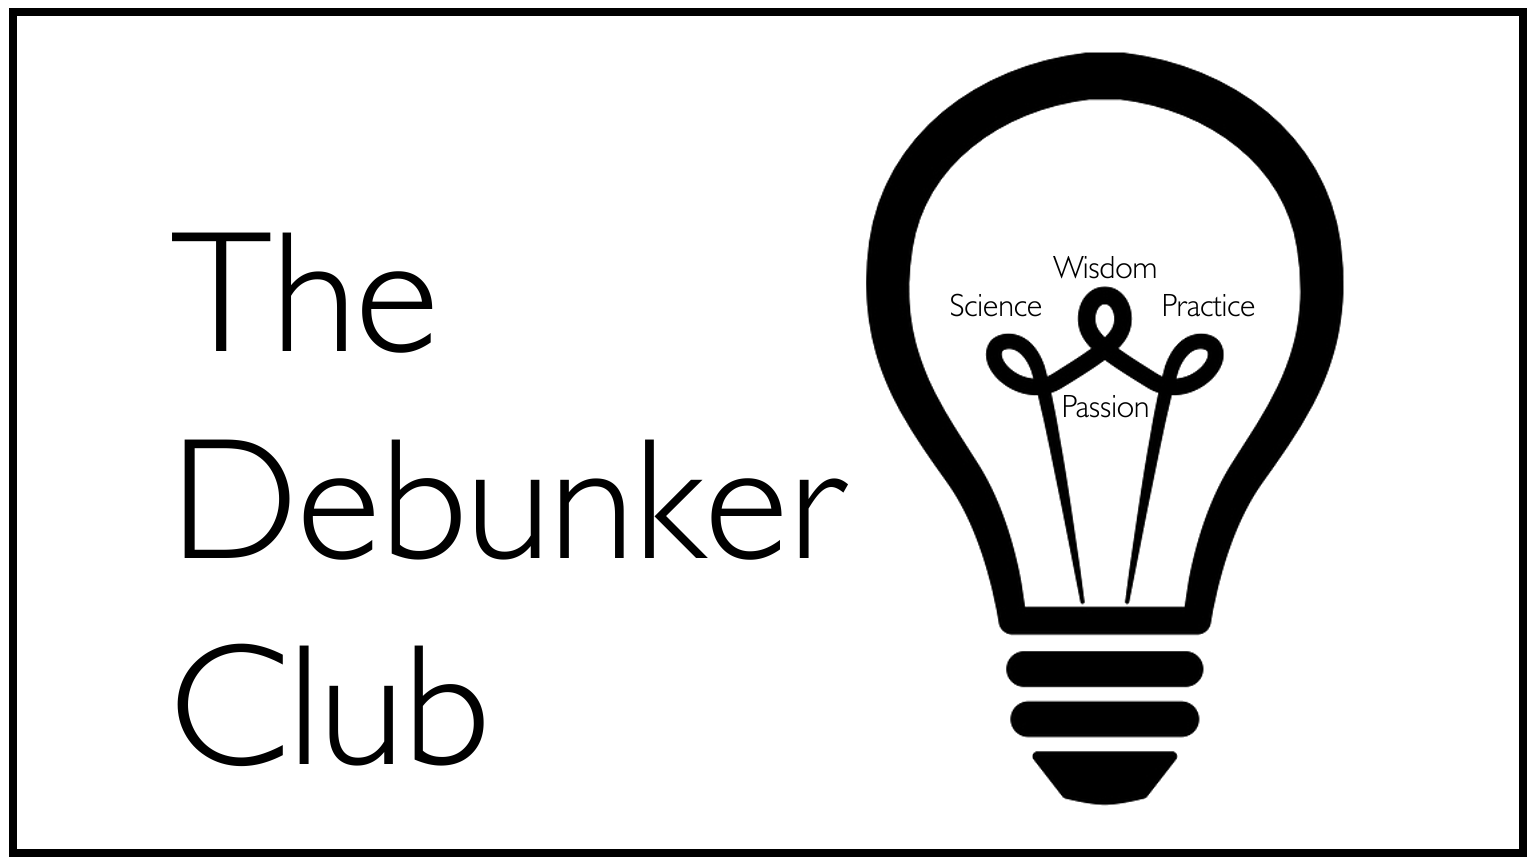 The Debunker Club